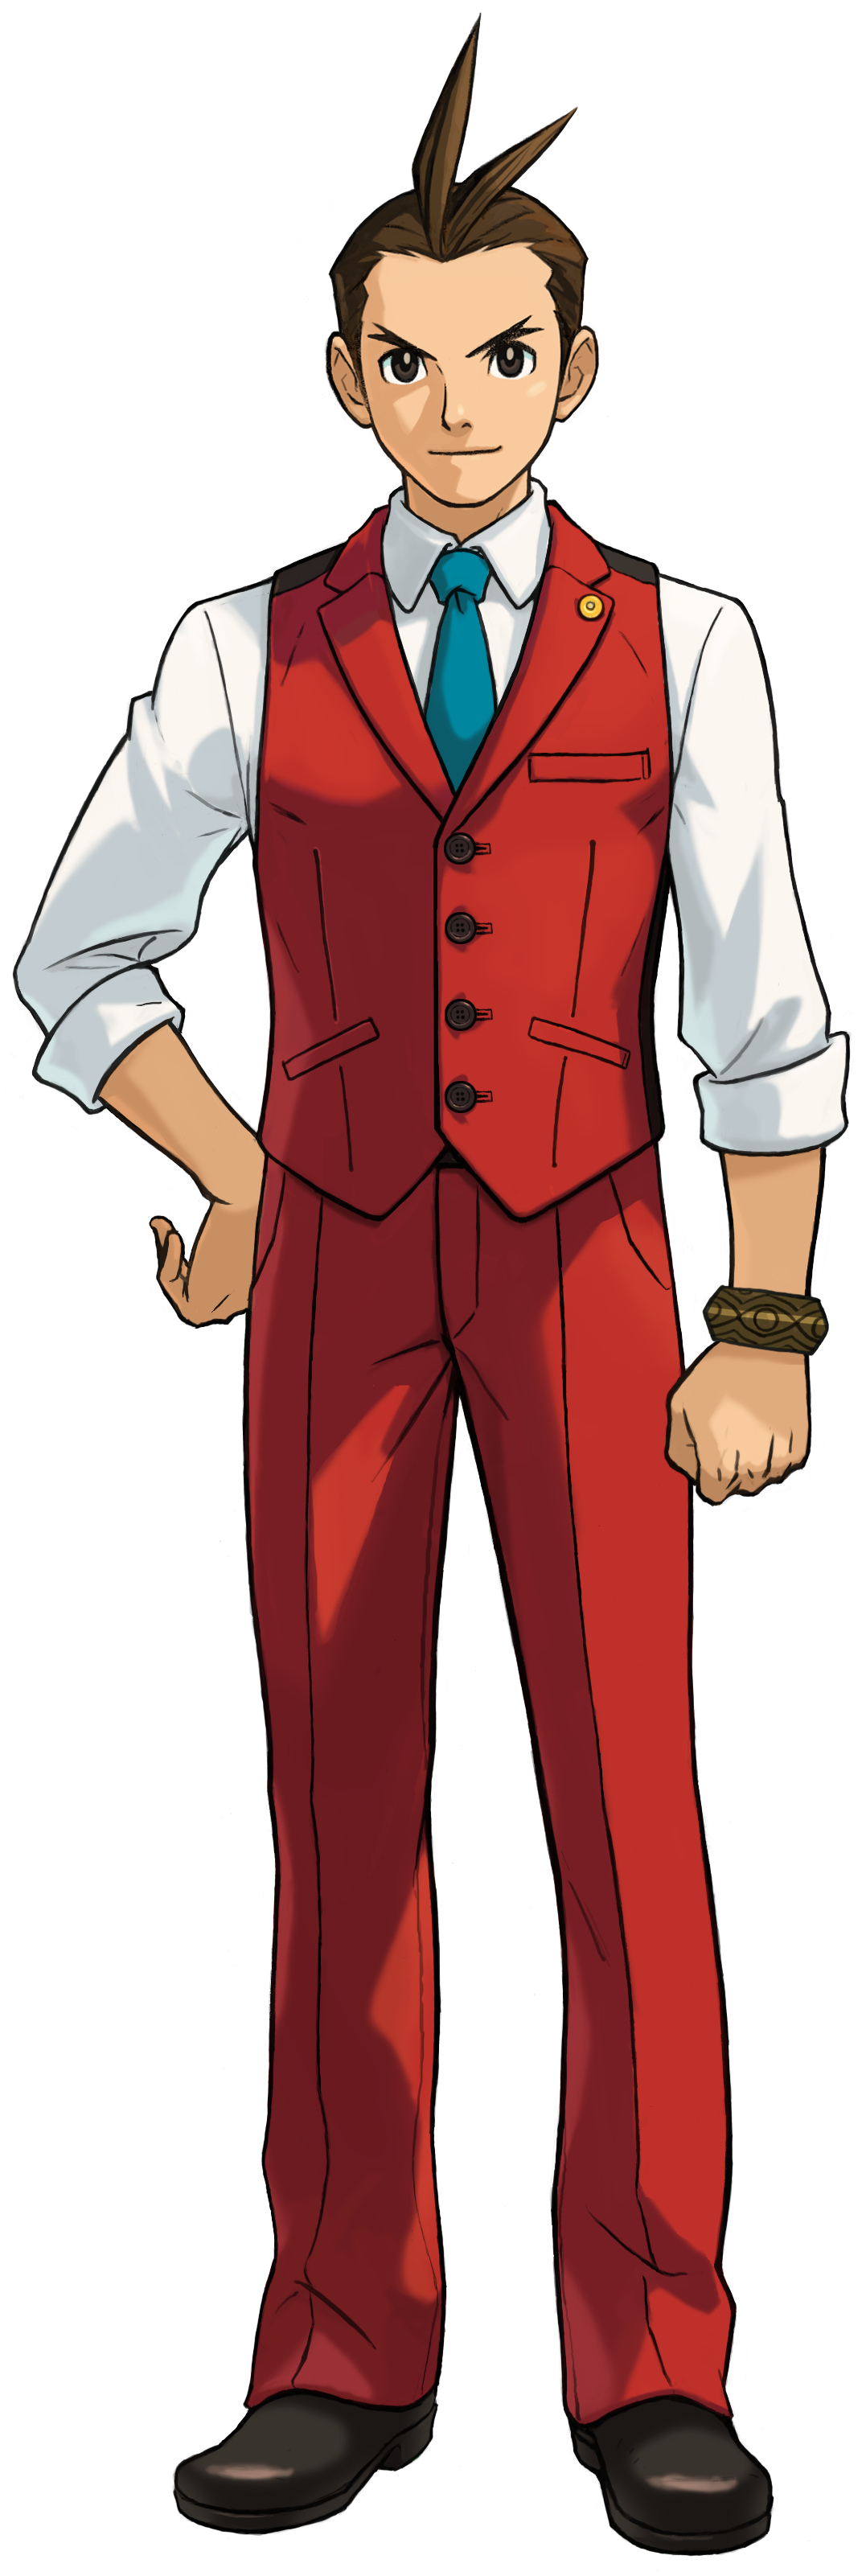 Apollo Justice - Image Gallery